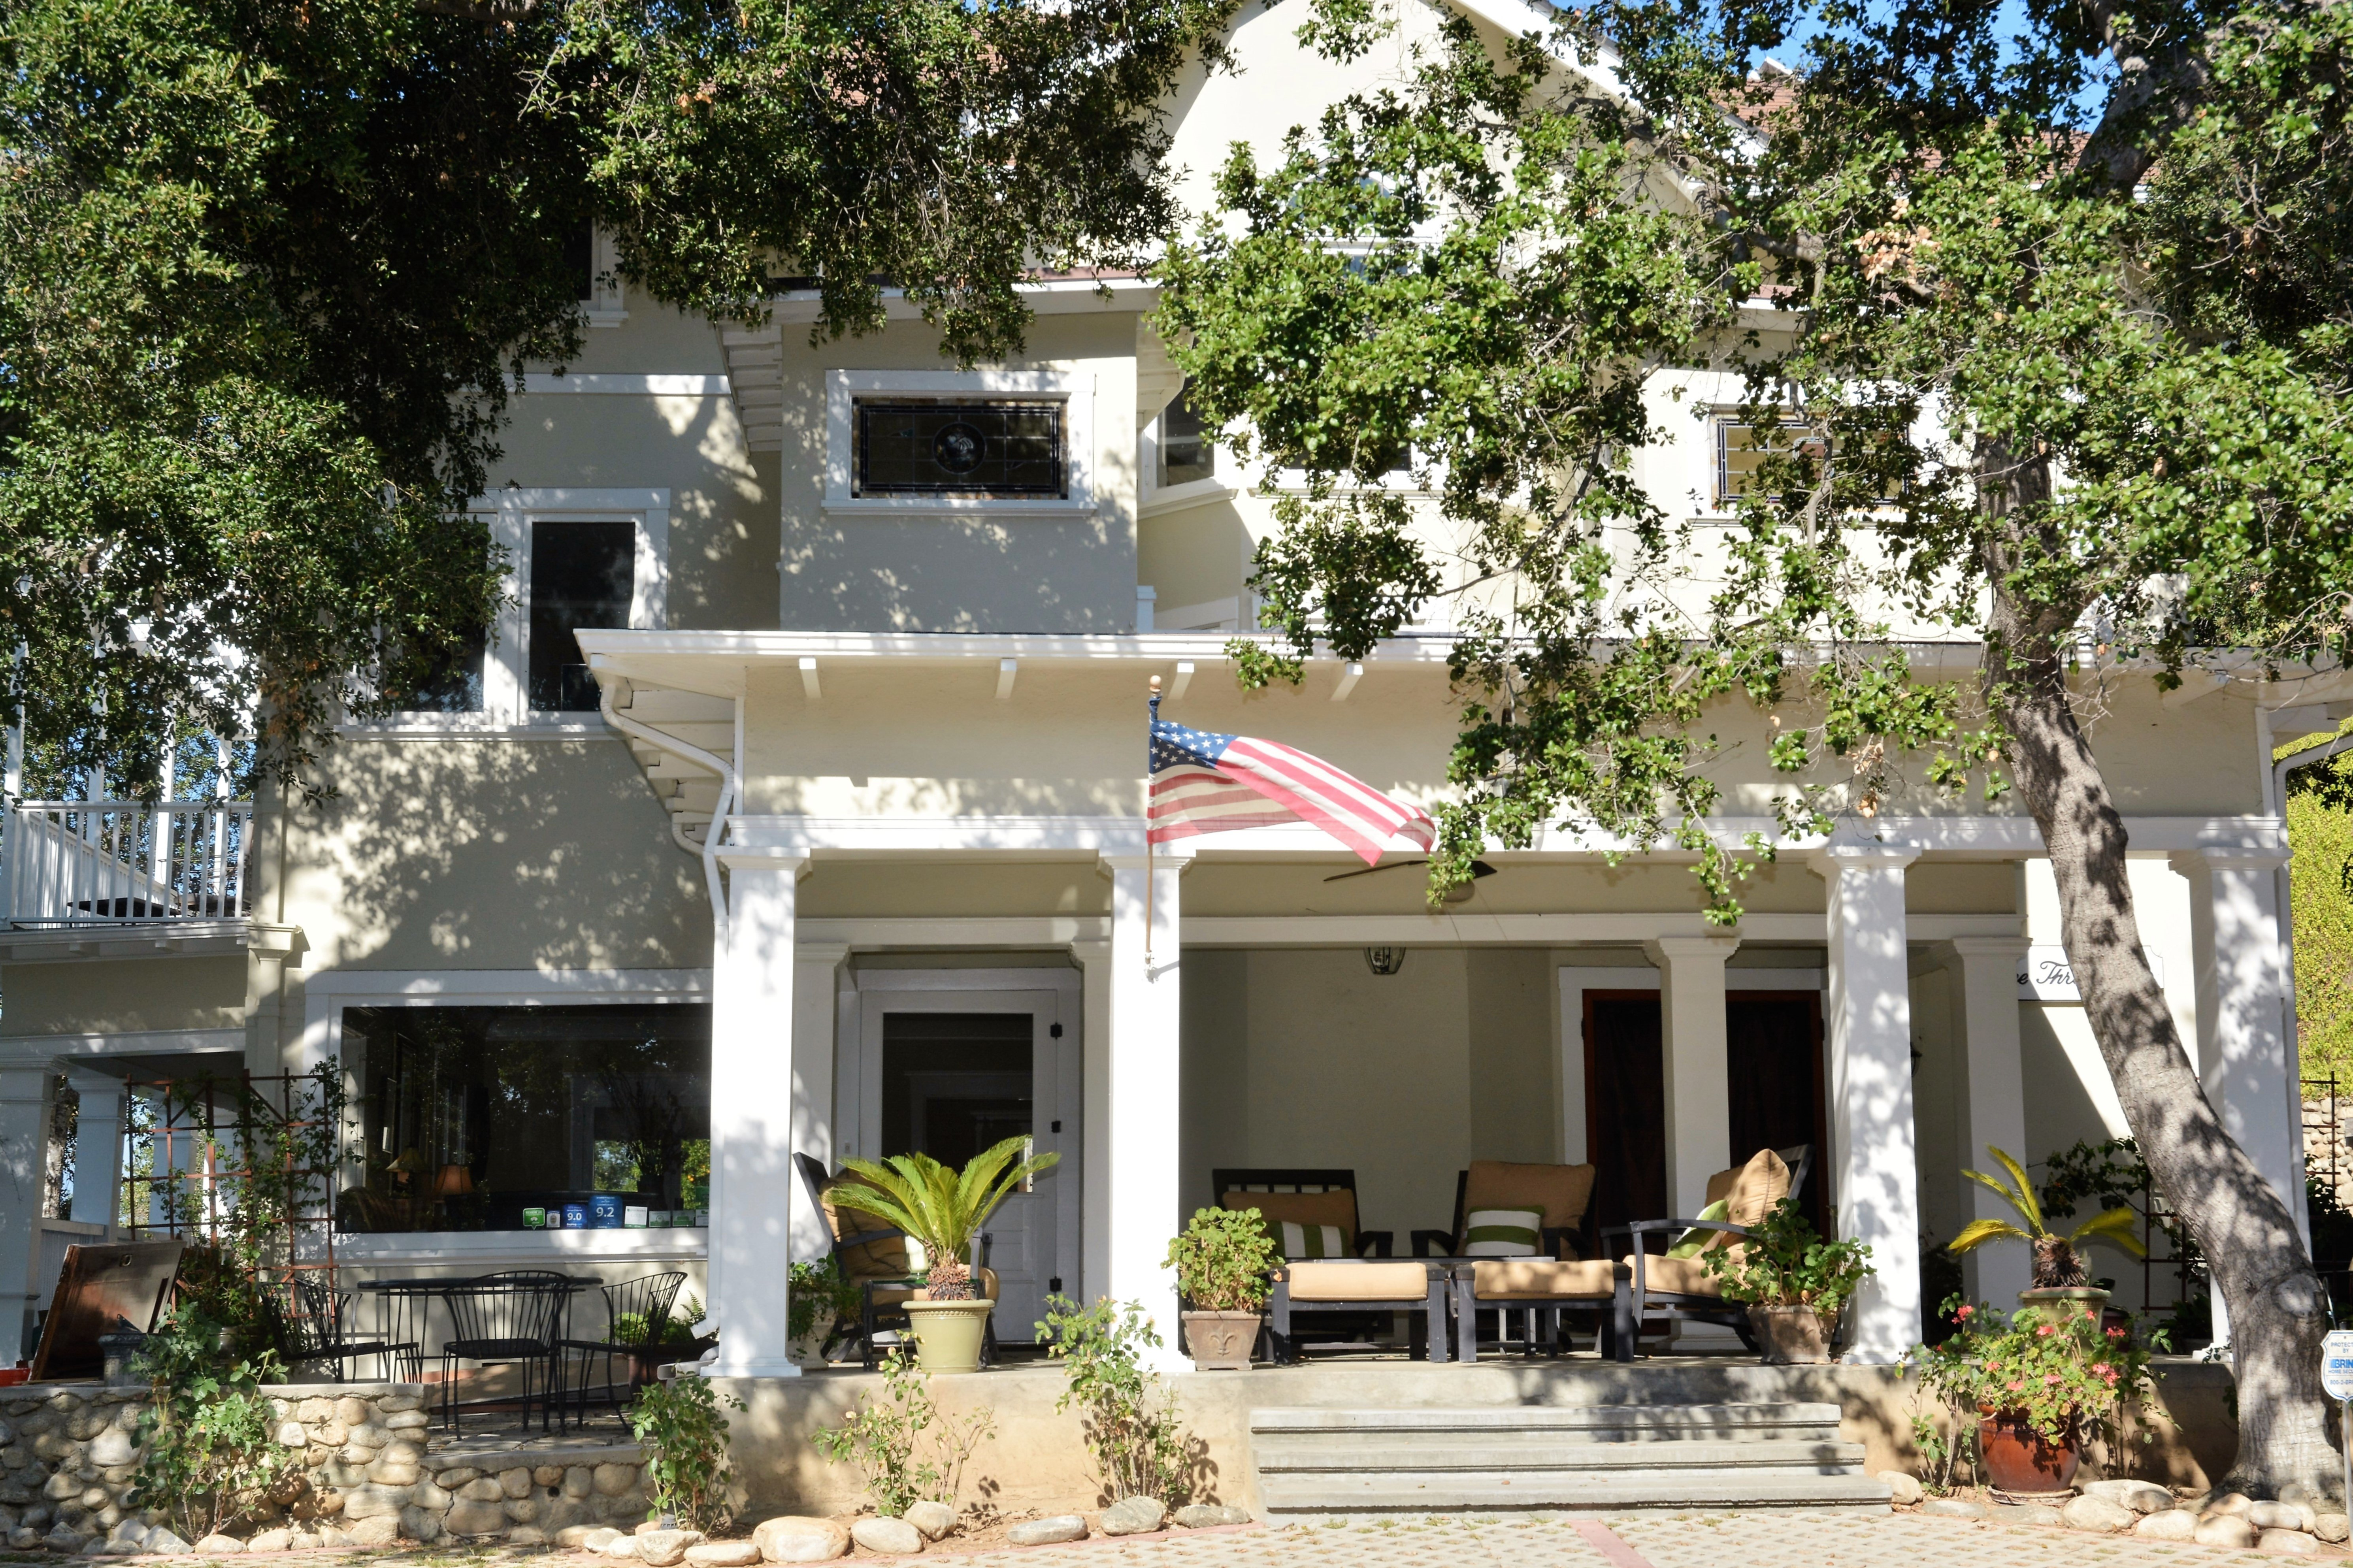 South Pasadena Bed and Breakfast